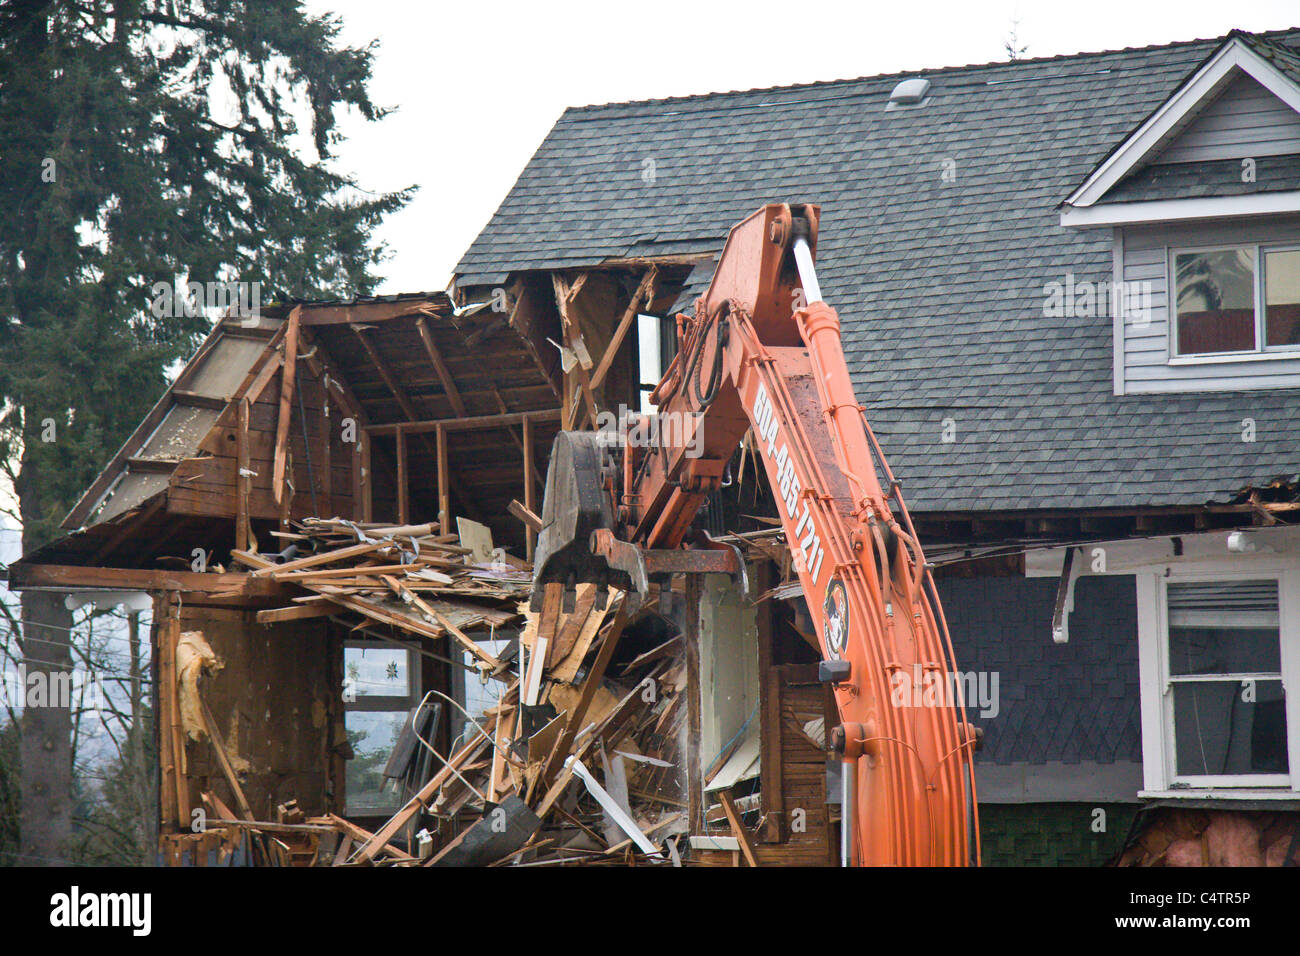 98 year old home being demolished to make way for a newer building - Stock Image